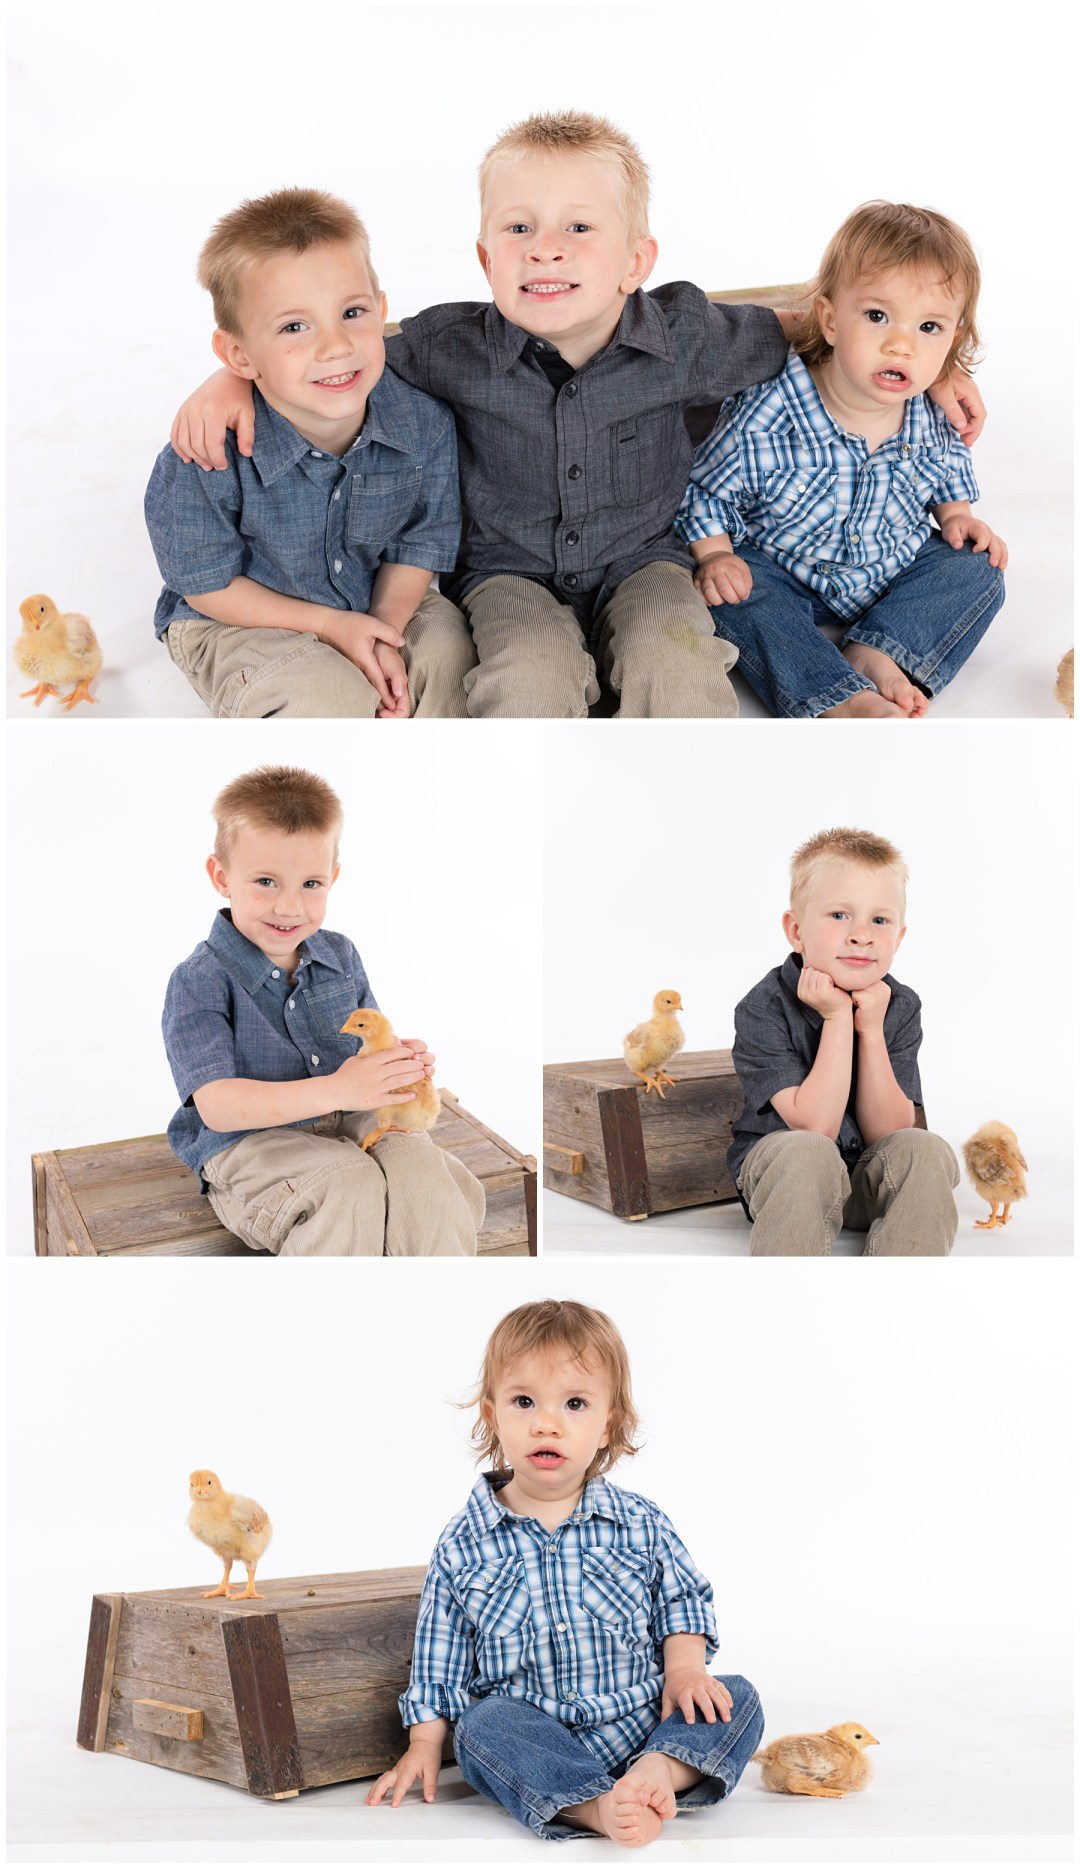 Brothers portraits for Easter with baby chicks